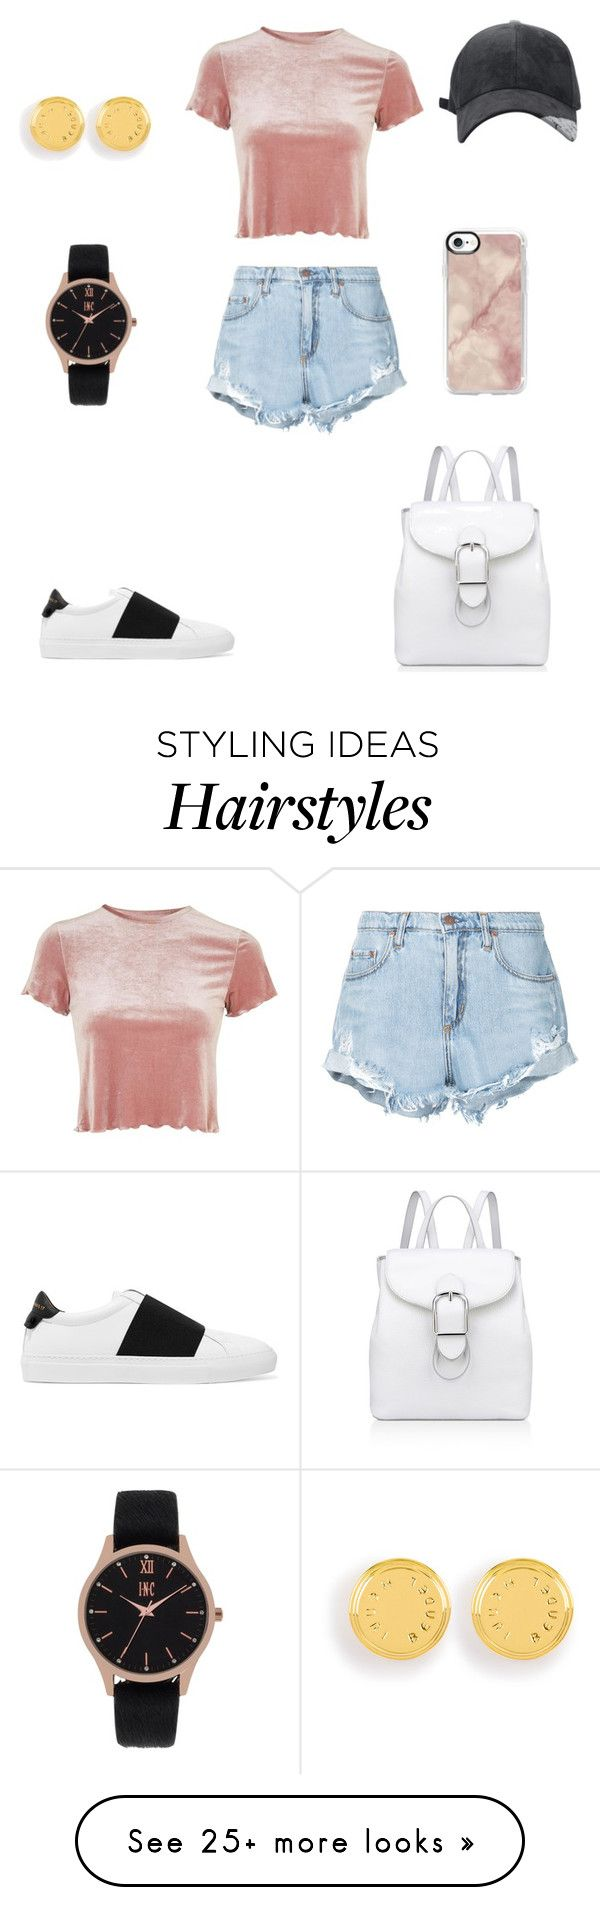 """""""Sans titre #1567"""" by wali-emna on Polyvore featuring Topshop, Nobody Denim, Givenchy, Anne Klein, Casetify, Henri Bendel and INC International Concepts"""